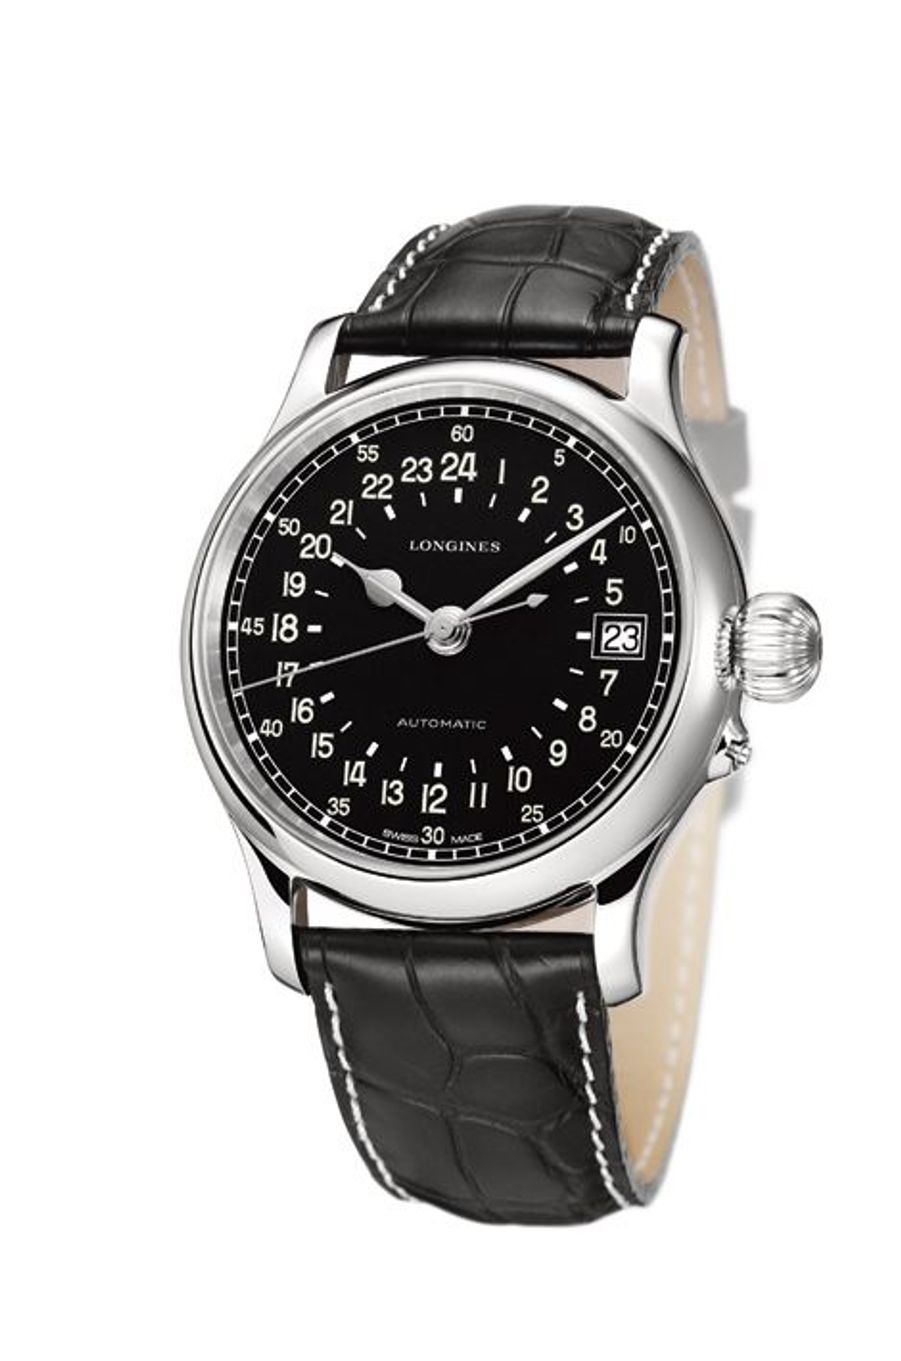 Longines Twenty-Four Hours en acier, 47, 5 mm de diamètre, mouvement automatique, bracelet en alligator. 2 800 €. Longines.